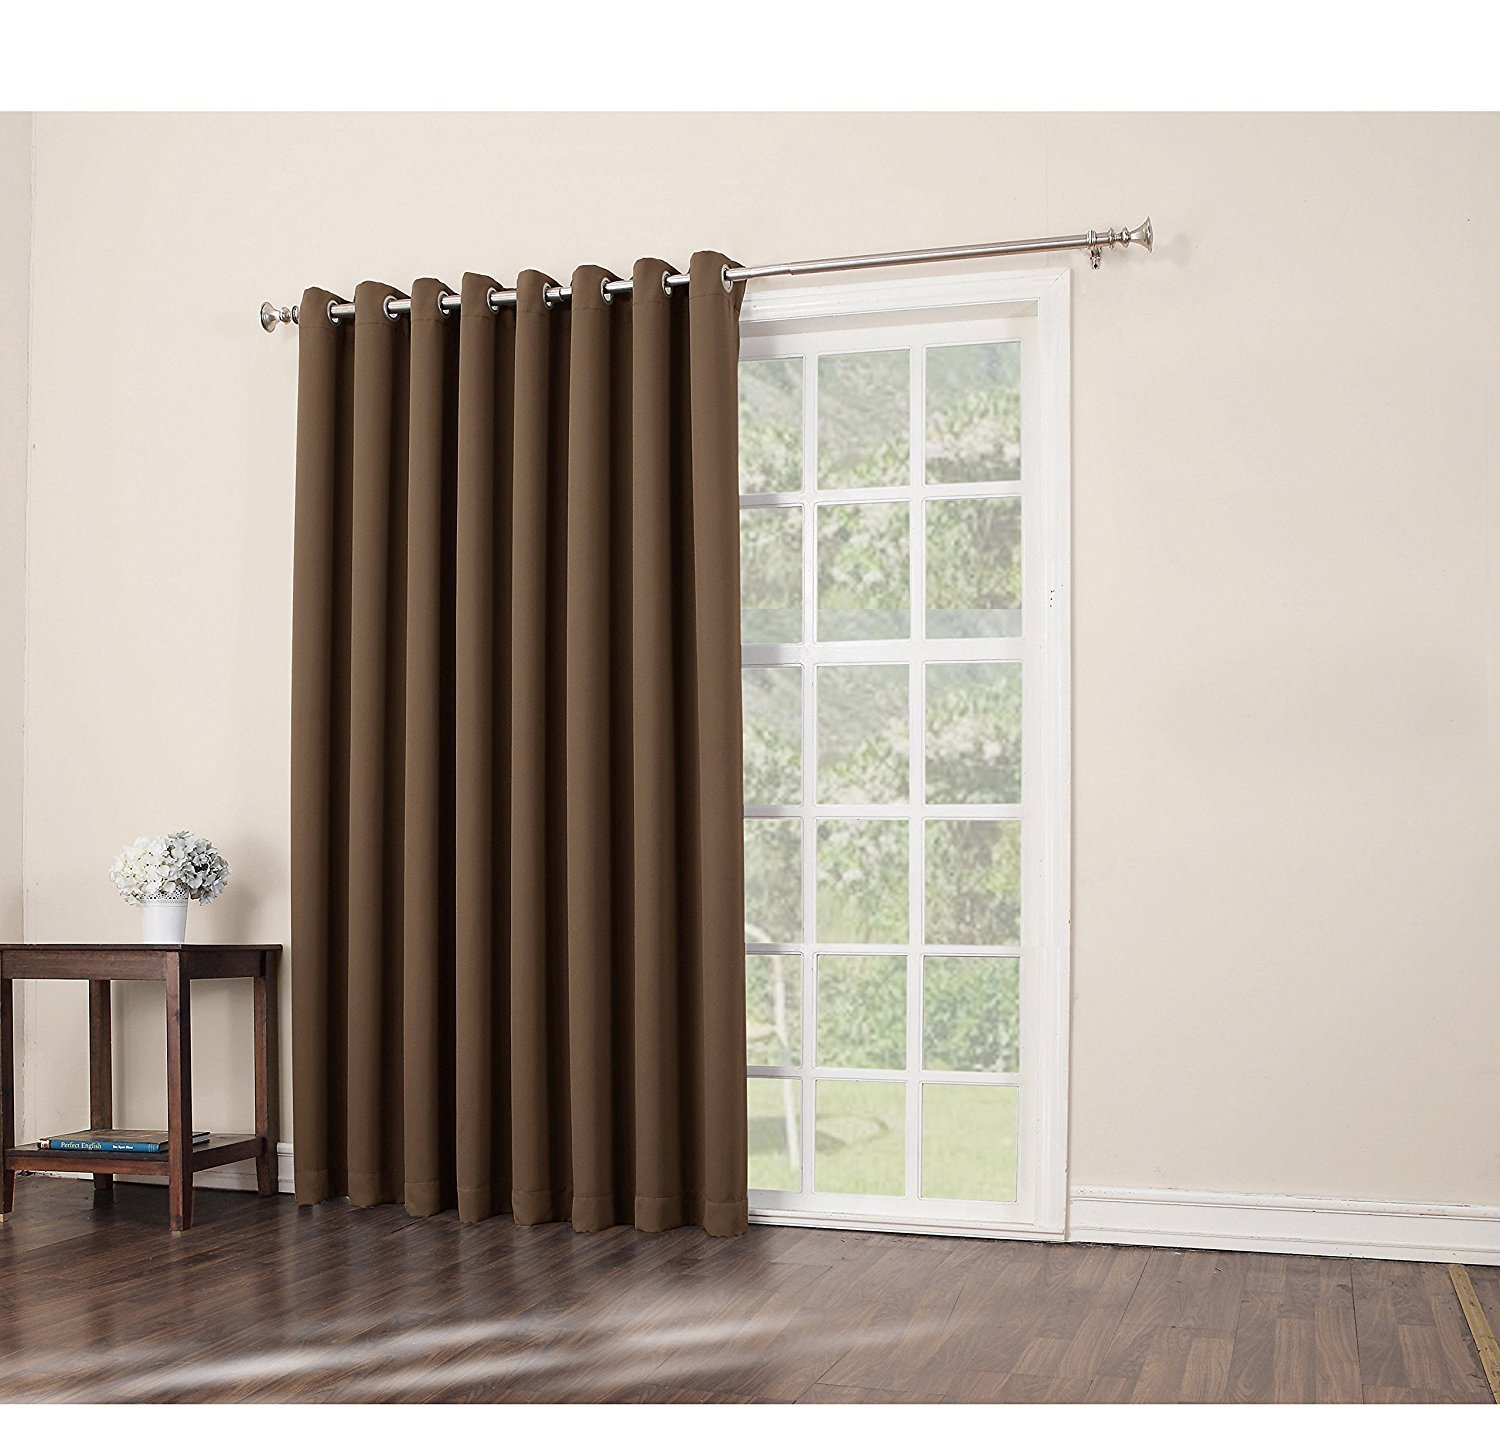 1pc 84 Barley Solid Color Sliding Door Curtain, Dark Brown Sliding Patio Door Panel Window Treatment Single Panel, Modern Design Contemporary Curtains Glass Door, Grommet Polyester